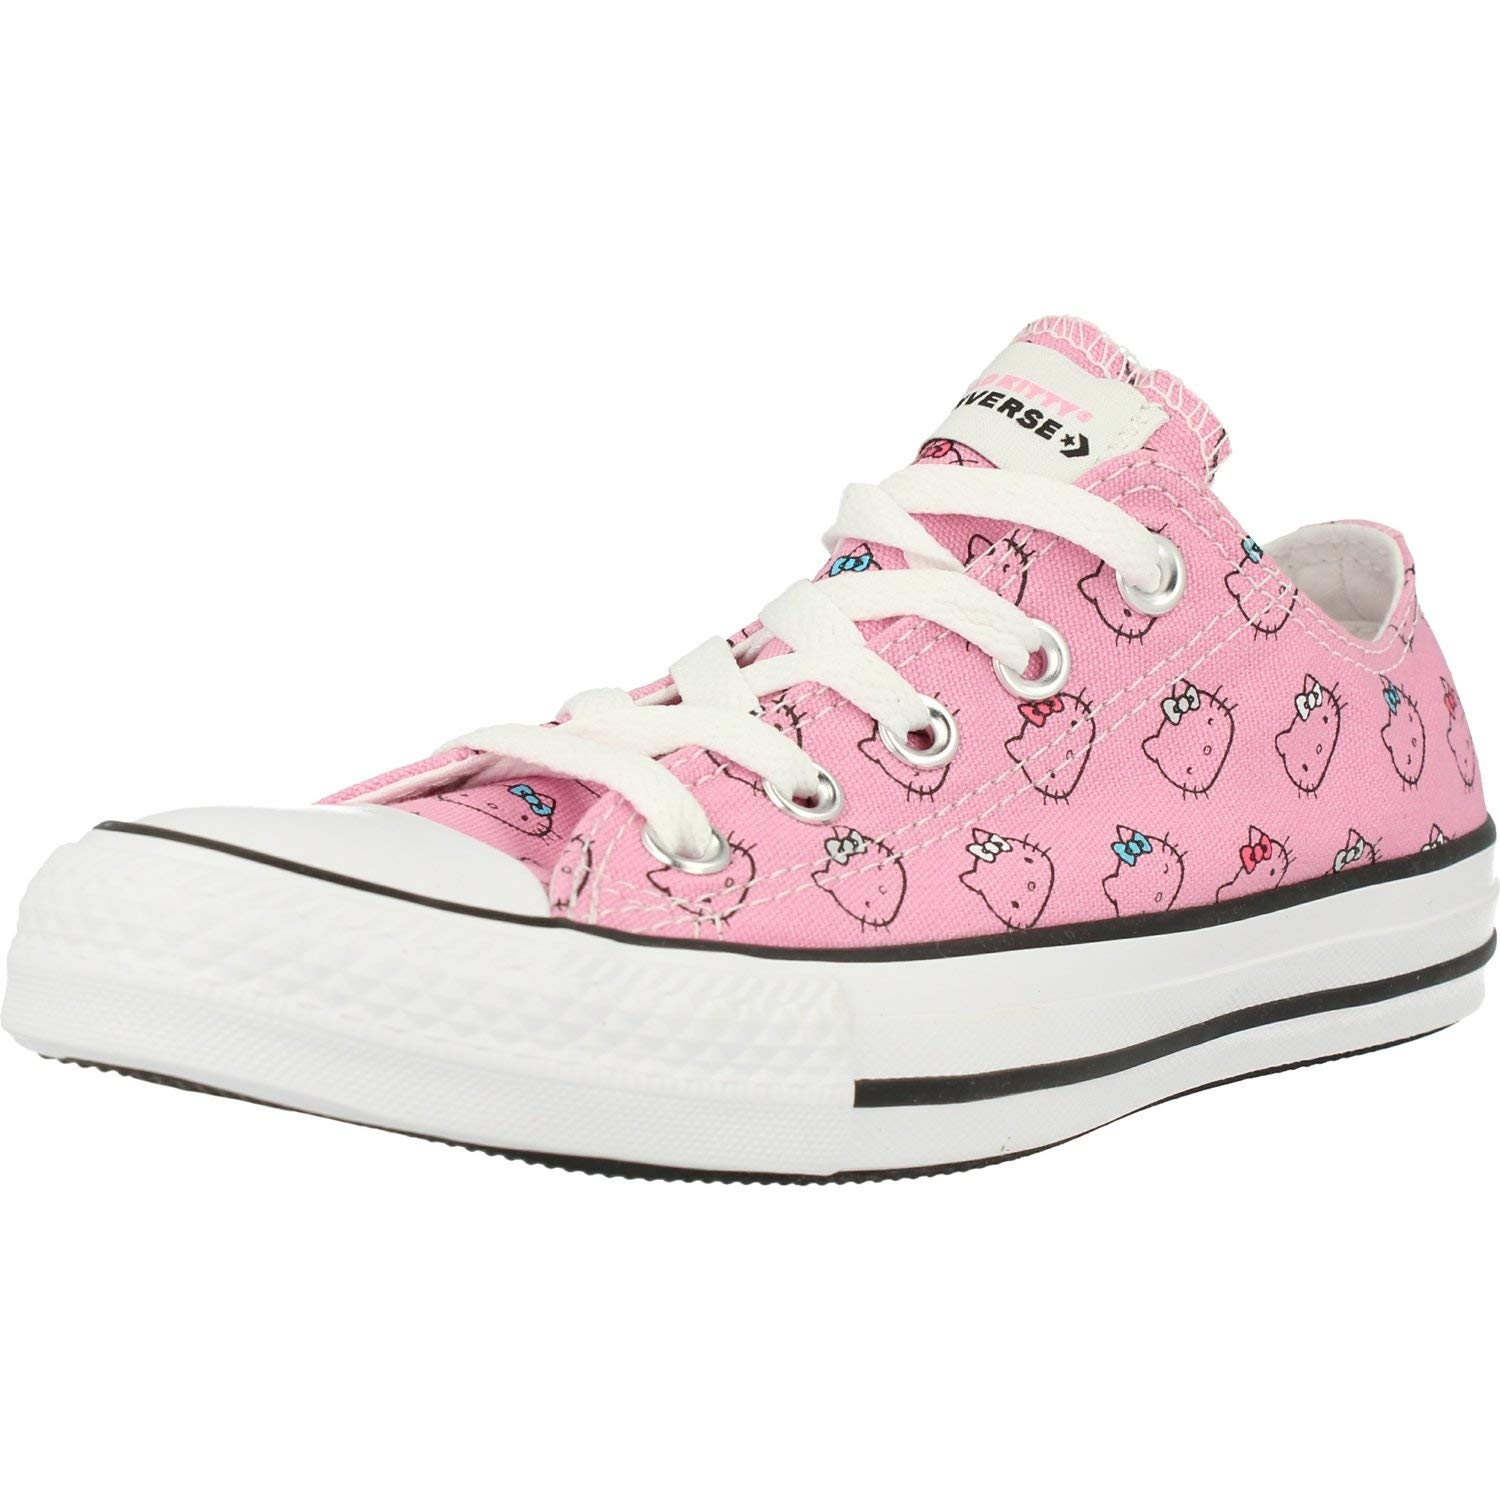 Converse Chuck Taylor All Star Hello Kitty Ox Prisma Pink